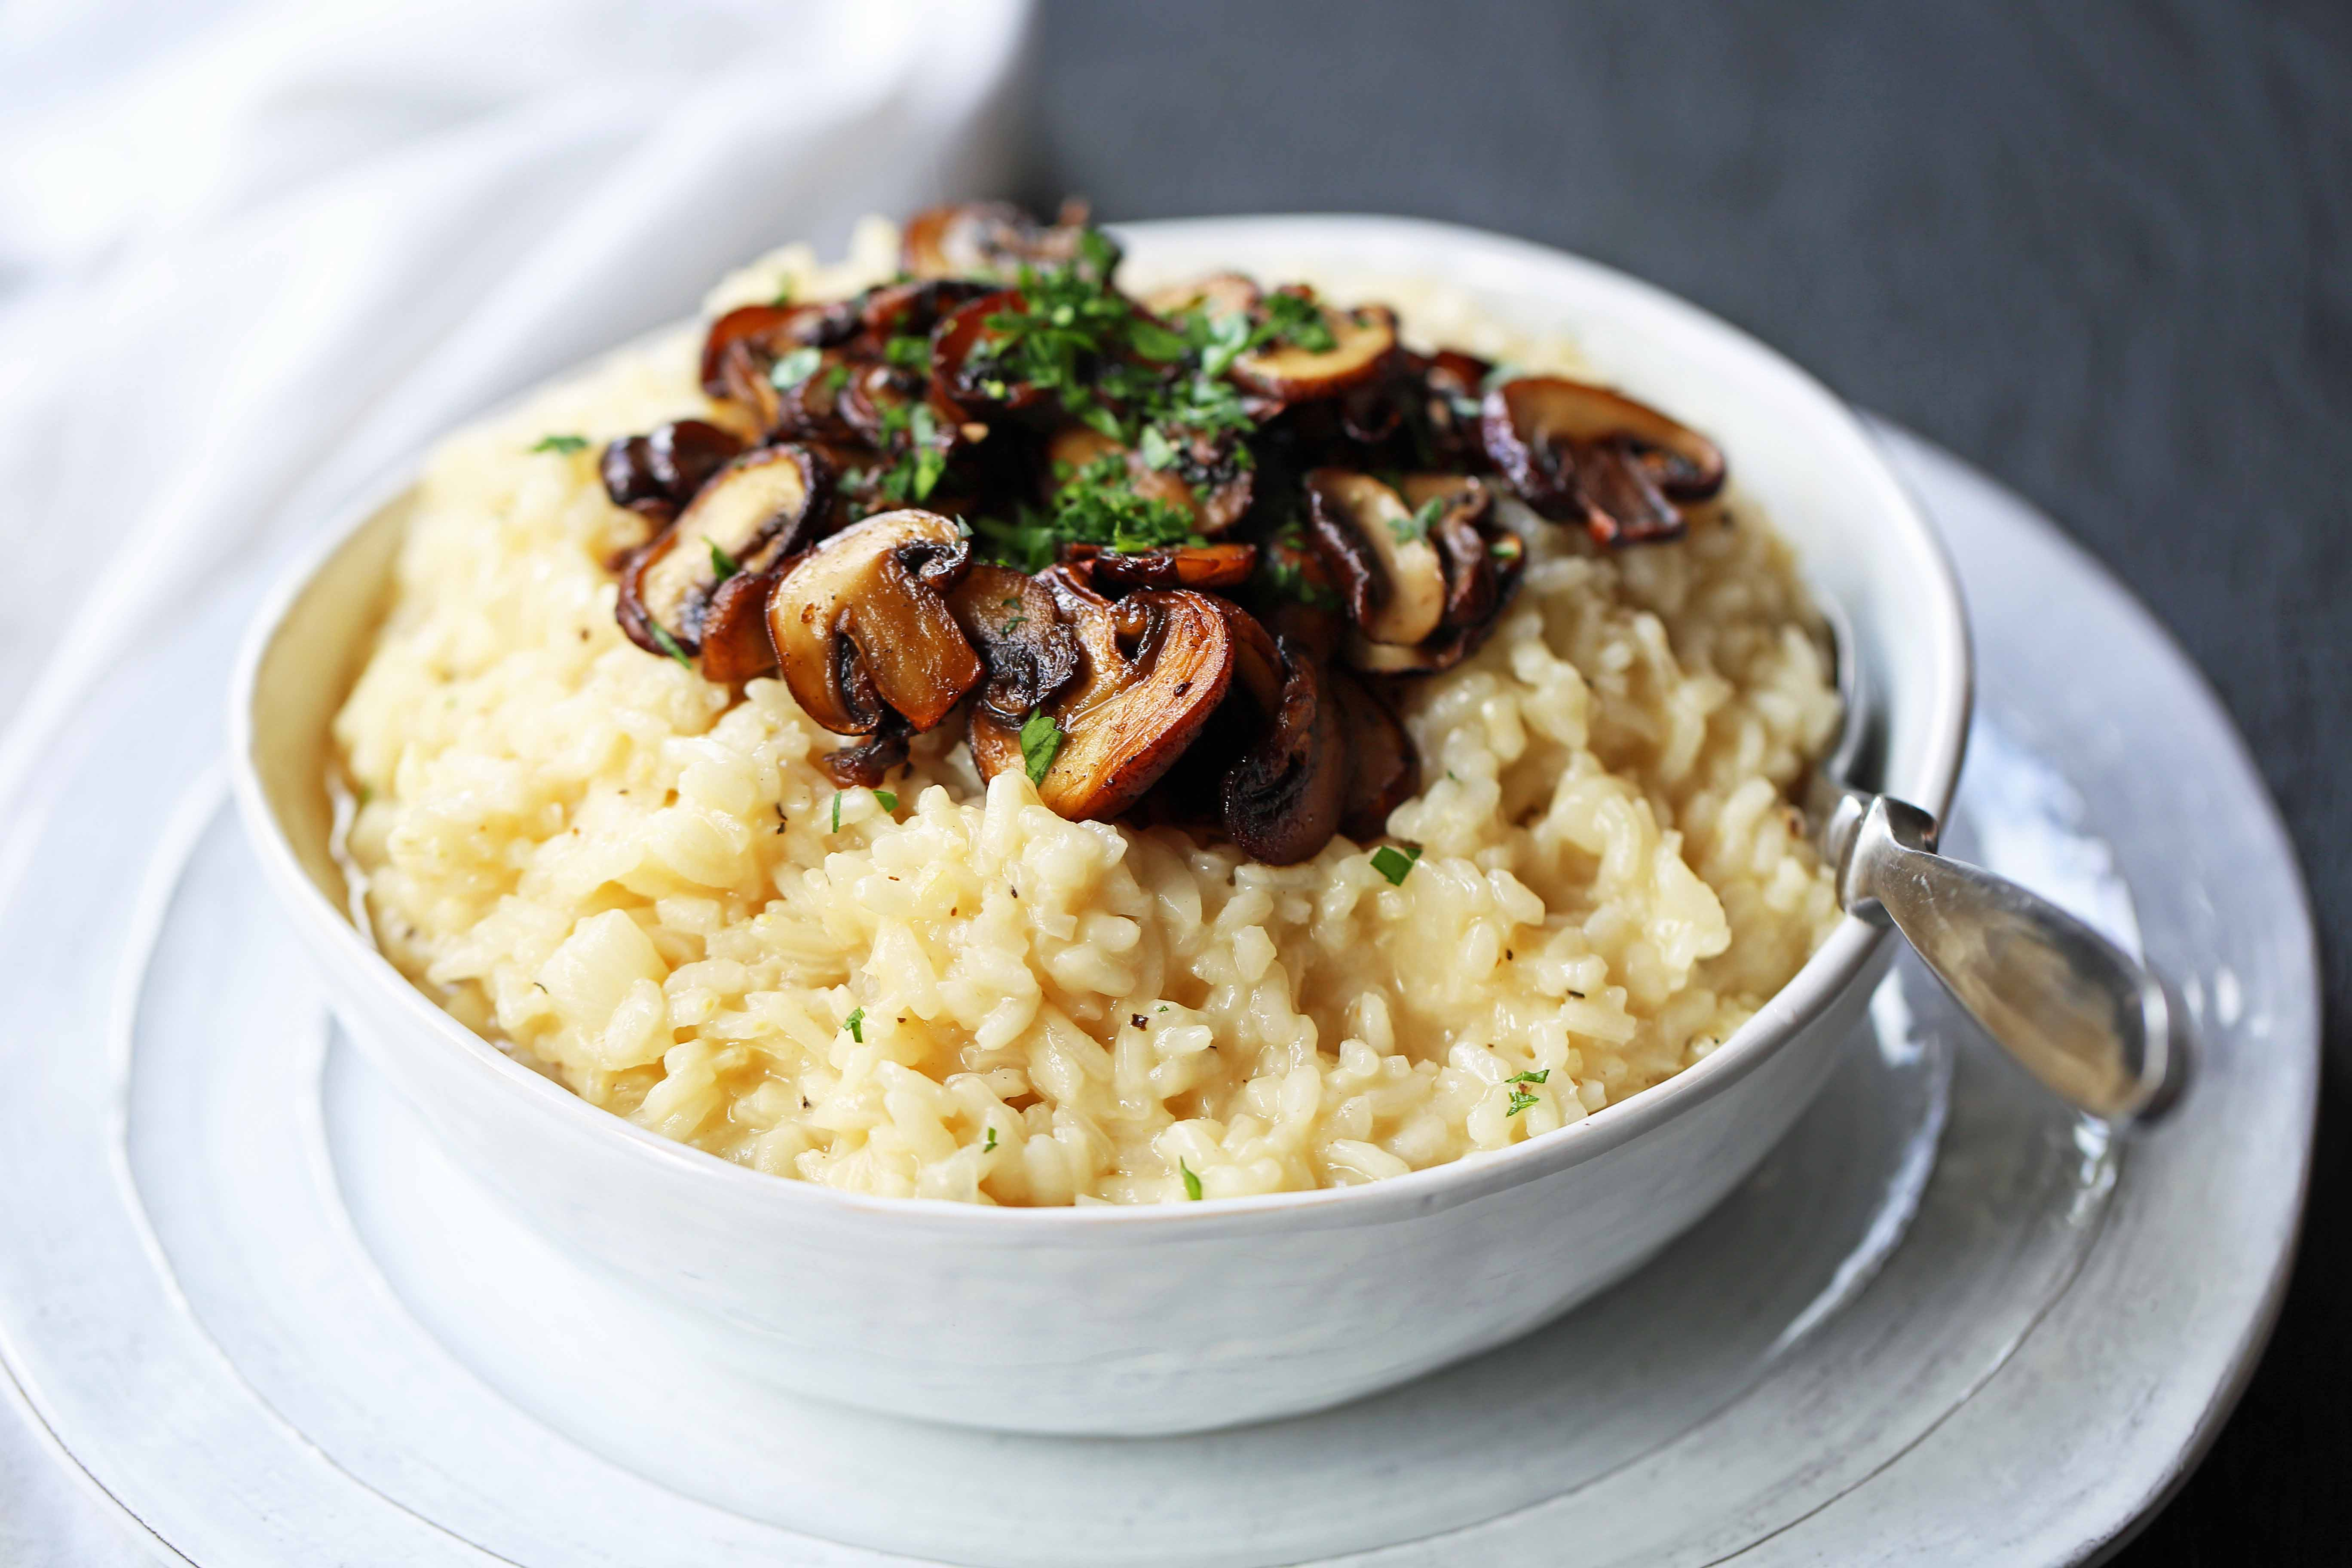 Creamy Mushroom Risotto. Rich, creamy rice slowly simmered with chicken broth,butter, parmesan cheese, and topped with butter sauteed mushrooms.www.modernhoney.com #risotto #homemaderisotto #mushroomrisotto